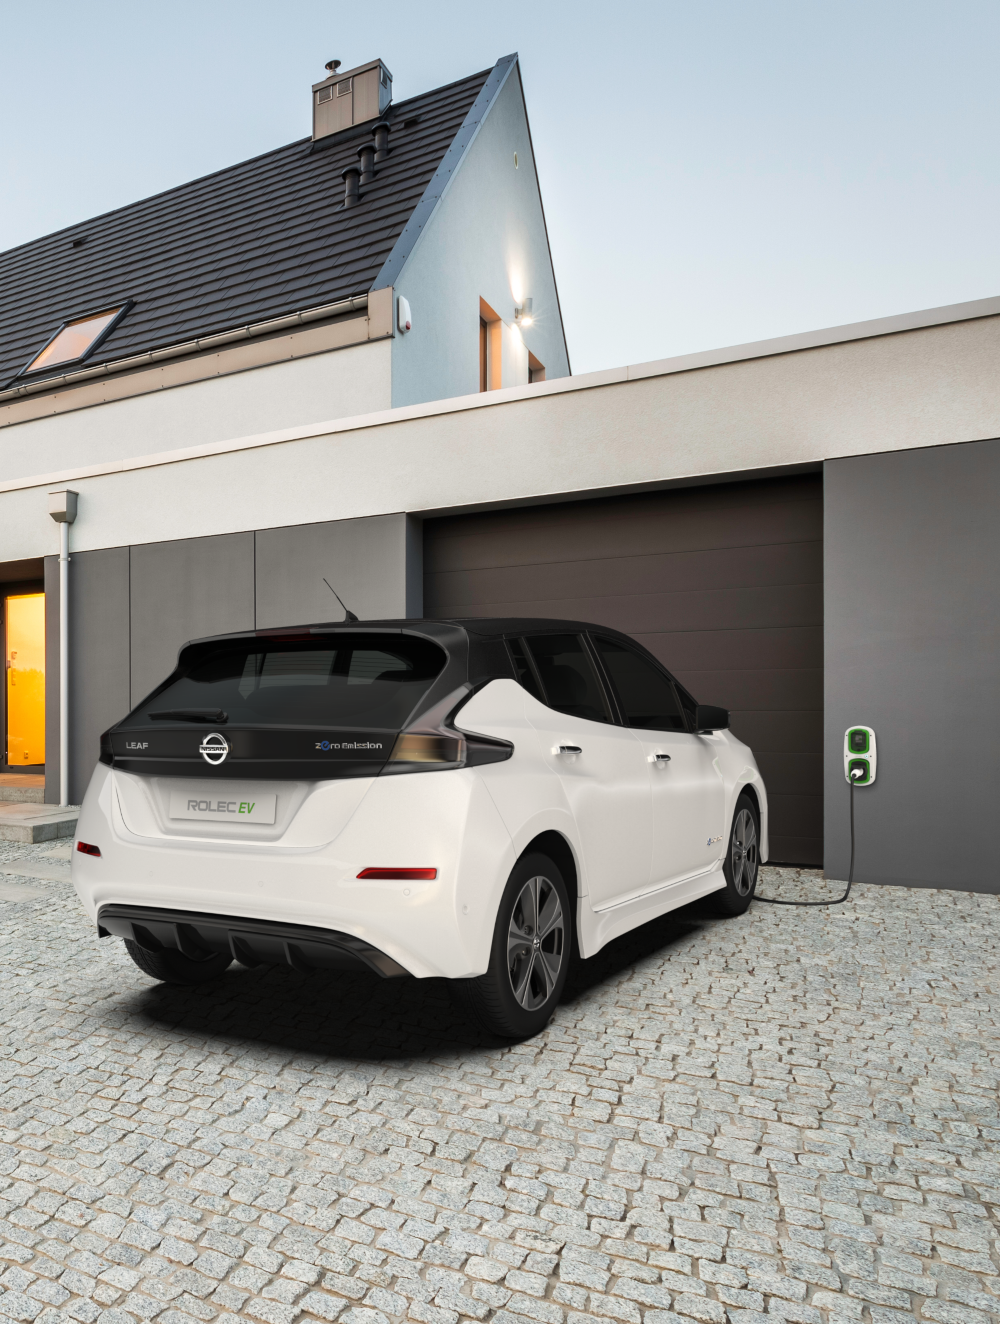 EV Electric Car Charging - Specialists installation of EV electrical car charging systems for both domestic and commercial customers.Electrical Car Charging System Installation